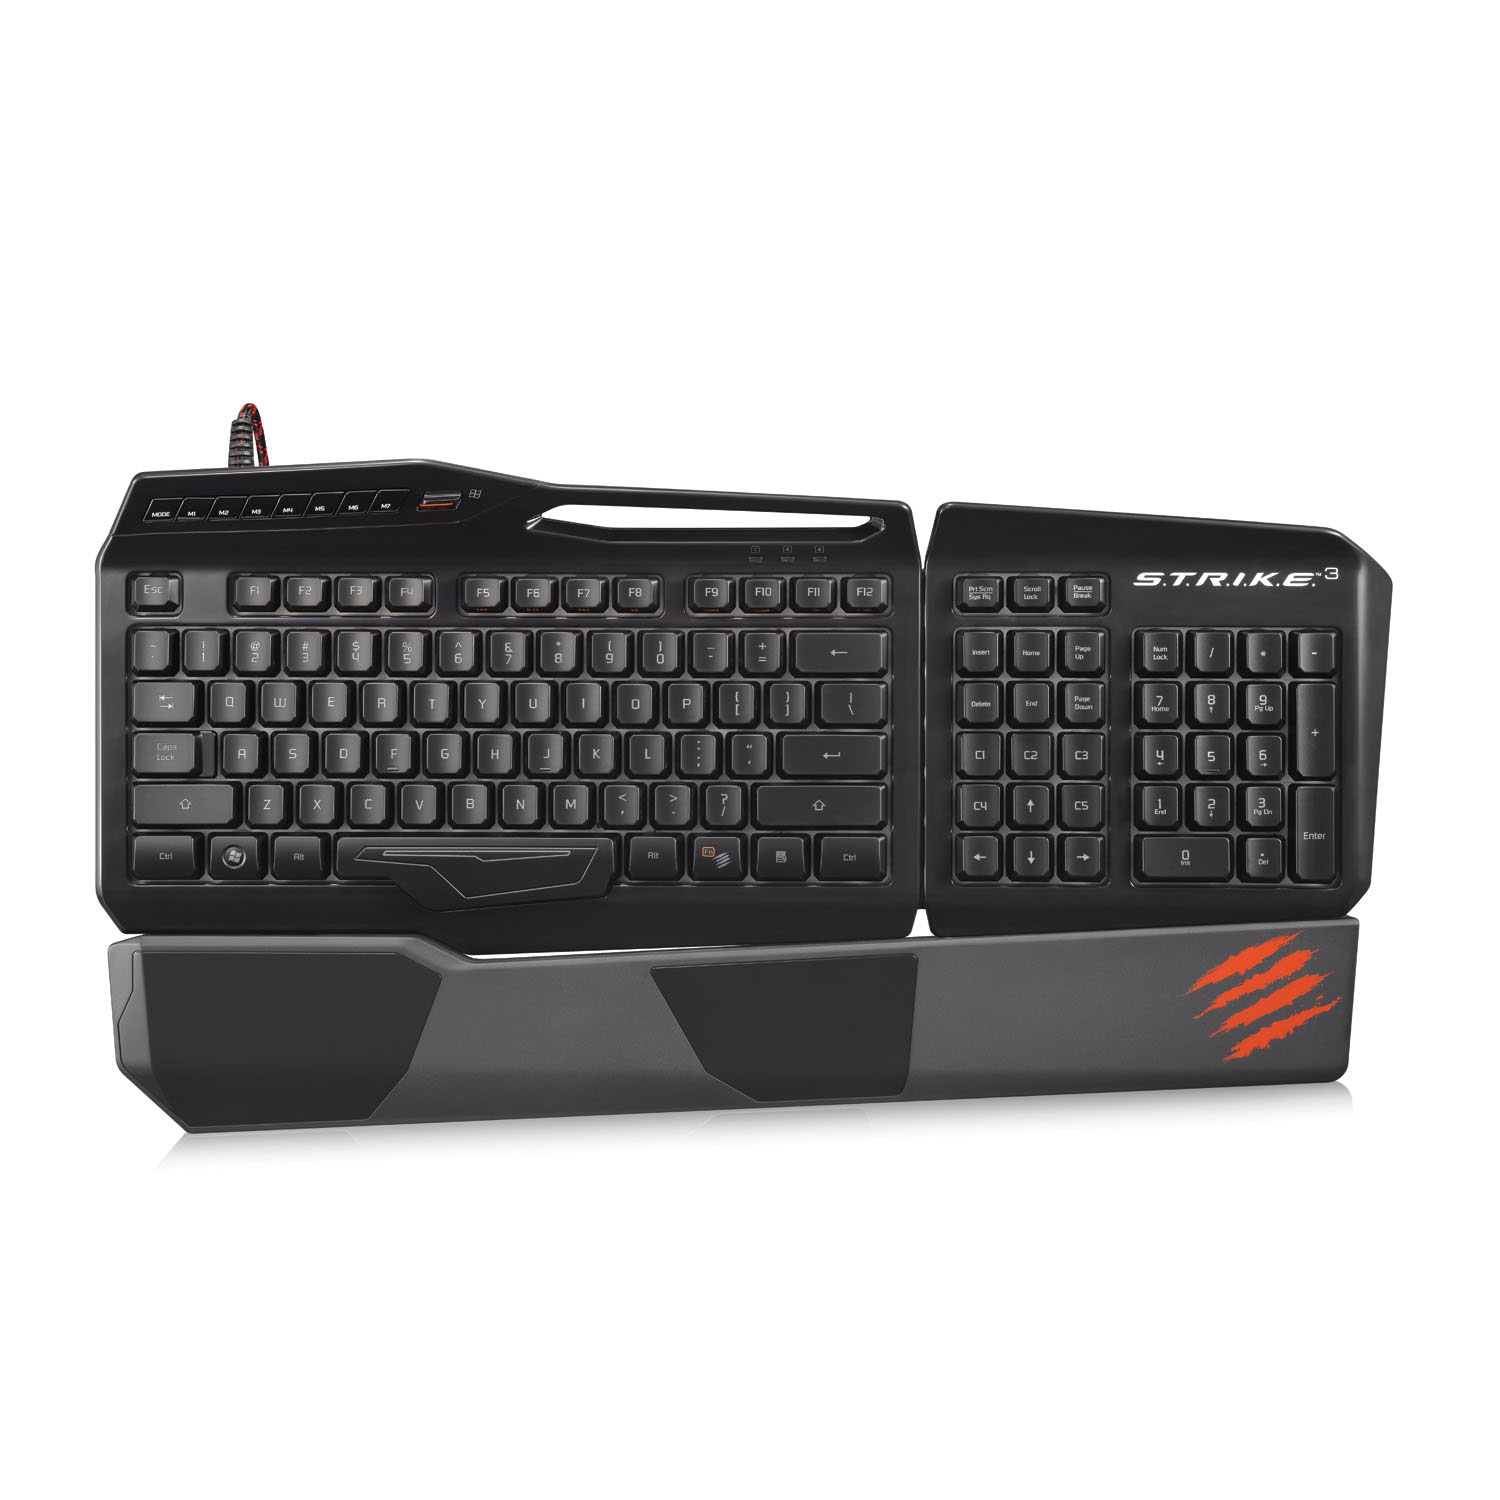 Mad Catz S.T.R.I.K.E 3 Gaming Keyboard